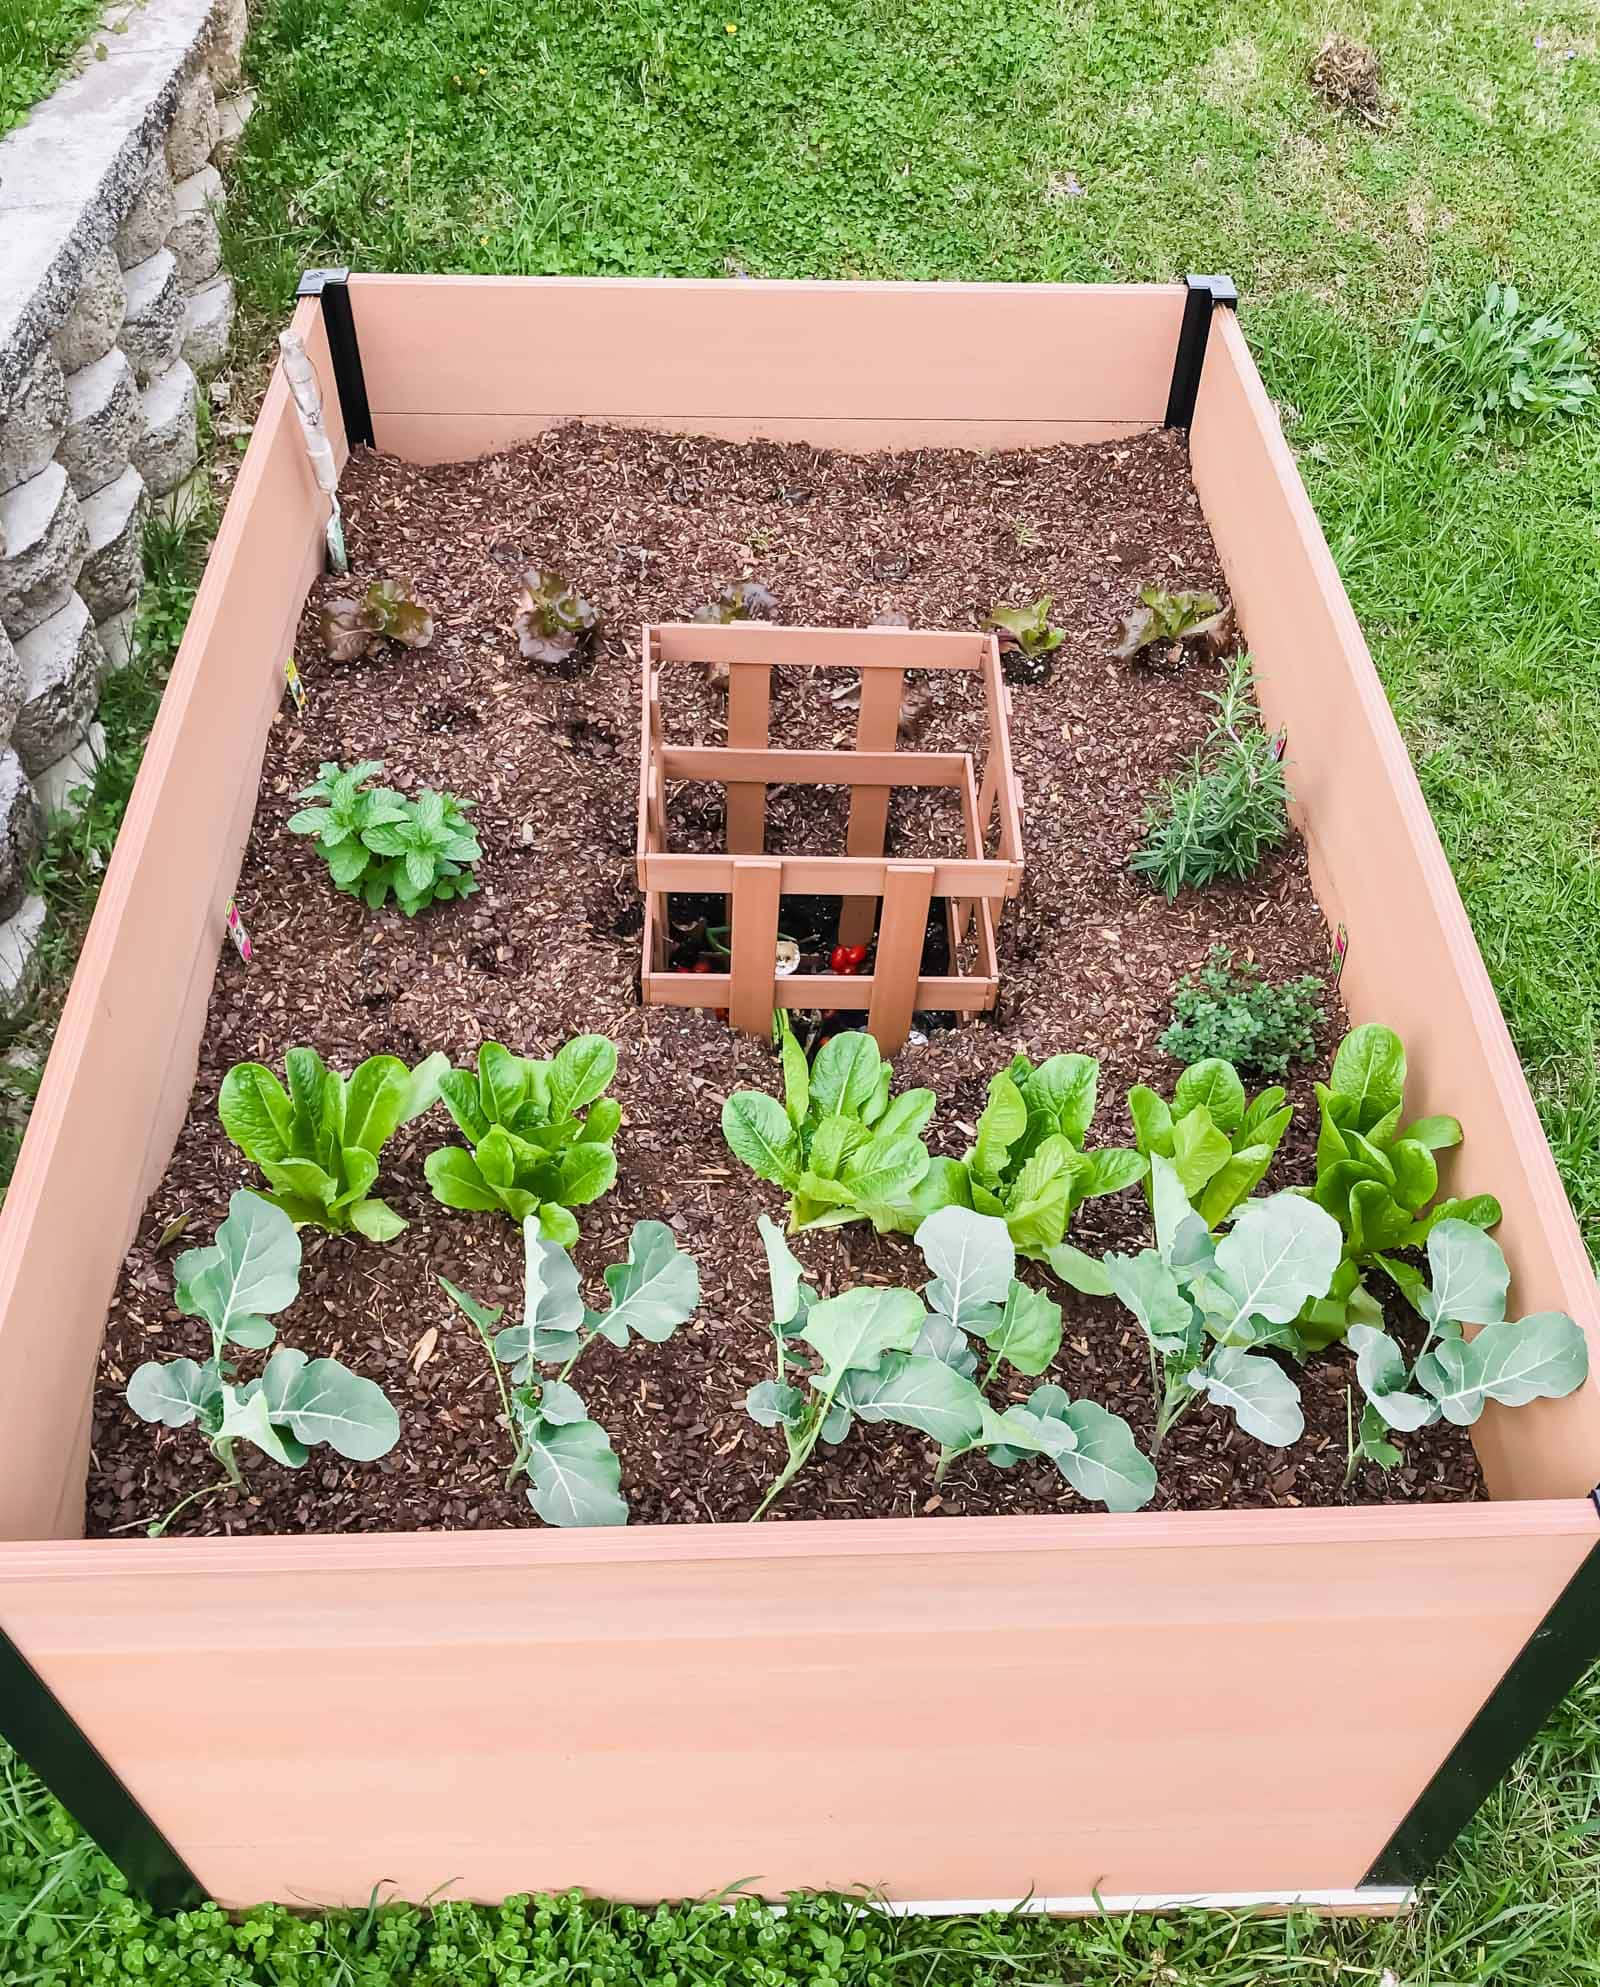 This guide to gardening for beginners features an easy-to-build raised garden bed from Costco! No tools are required to put the bed together and there is a compartment for making your own compost! #ad #sweetcayenne